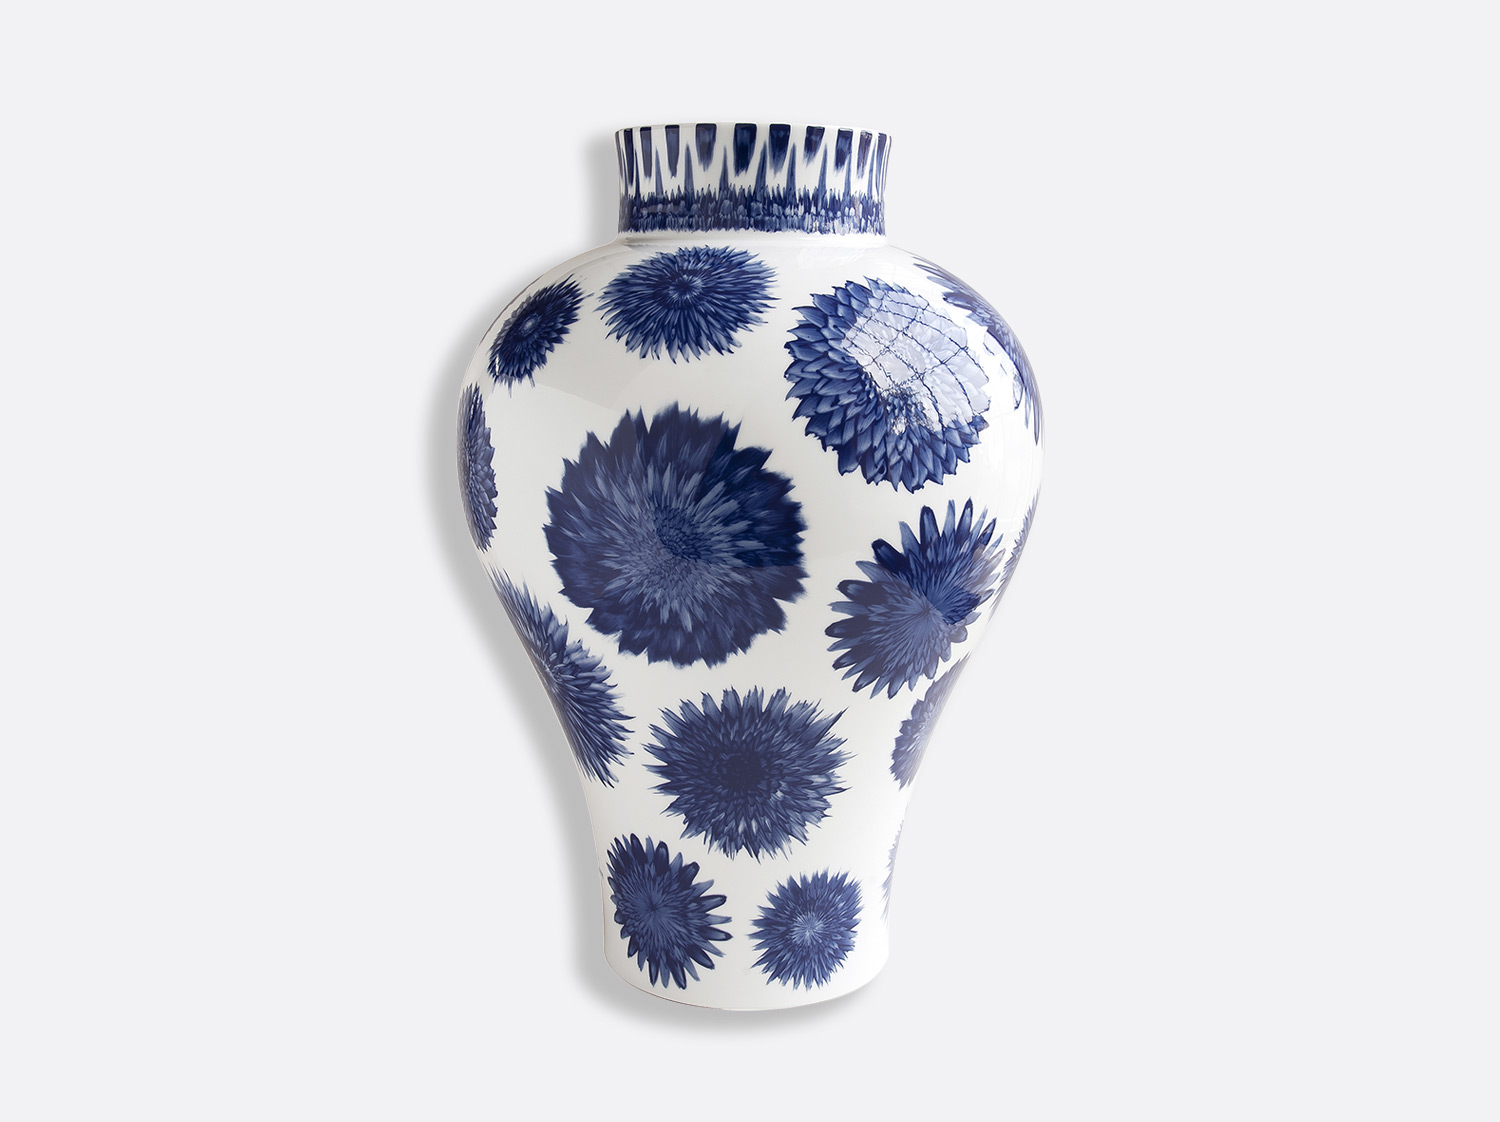 "China Super Bloom vase 18.1"" of the collection IN BLOOM - Zemer Peled 